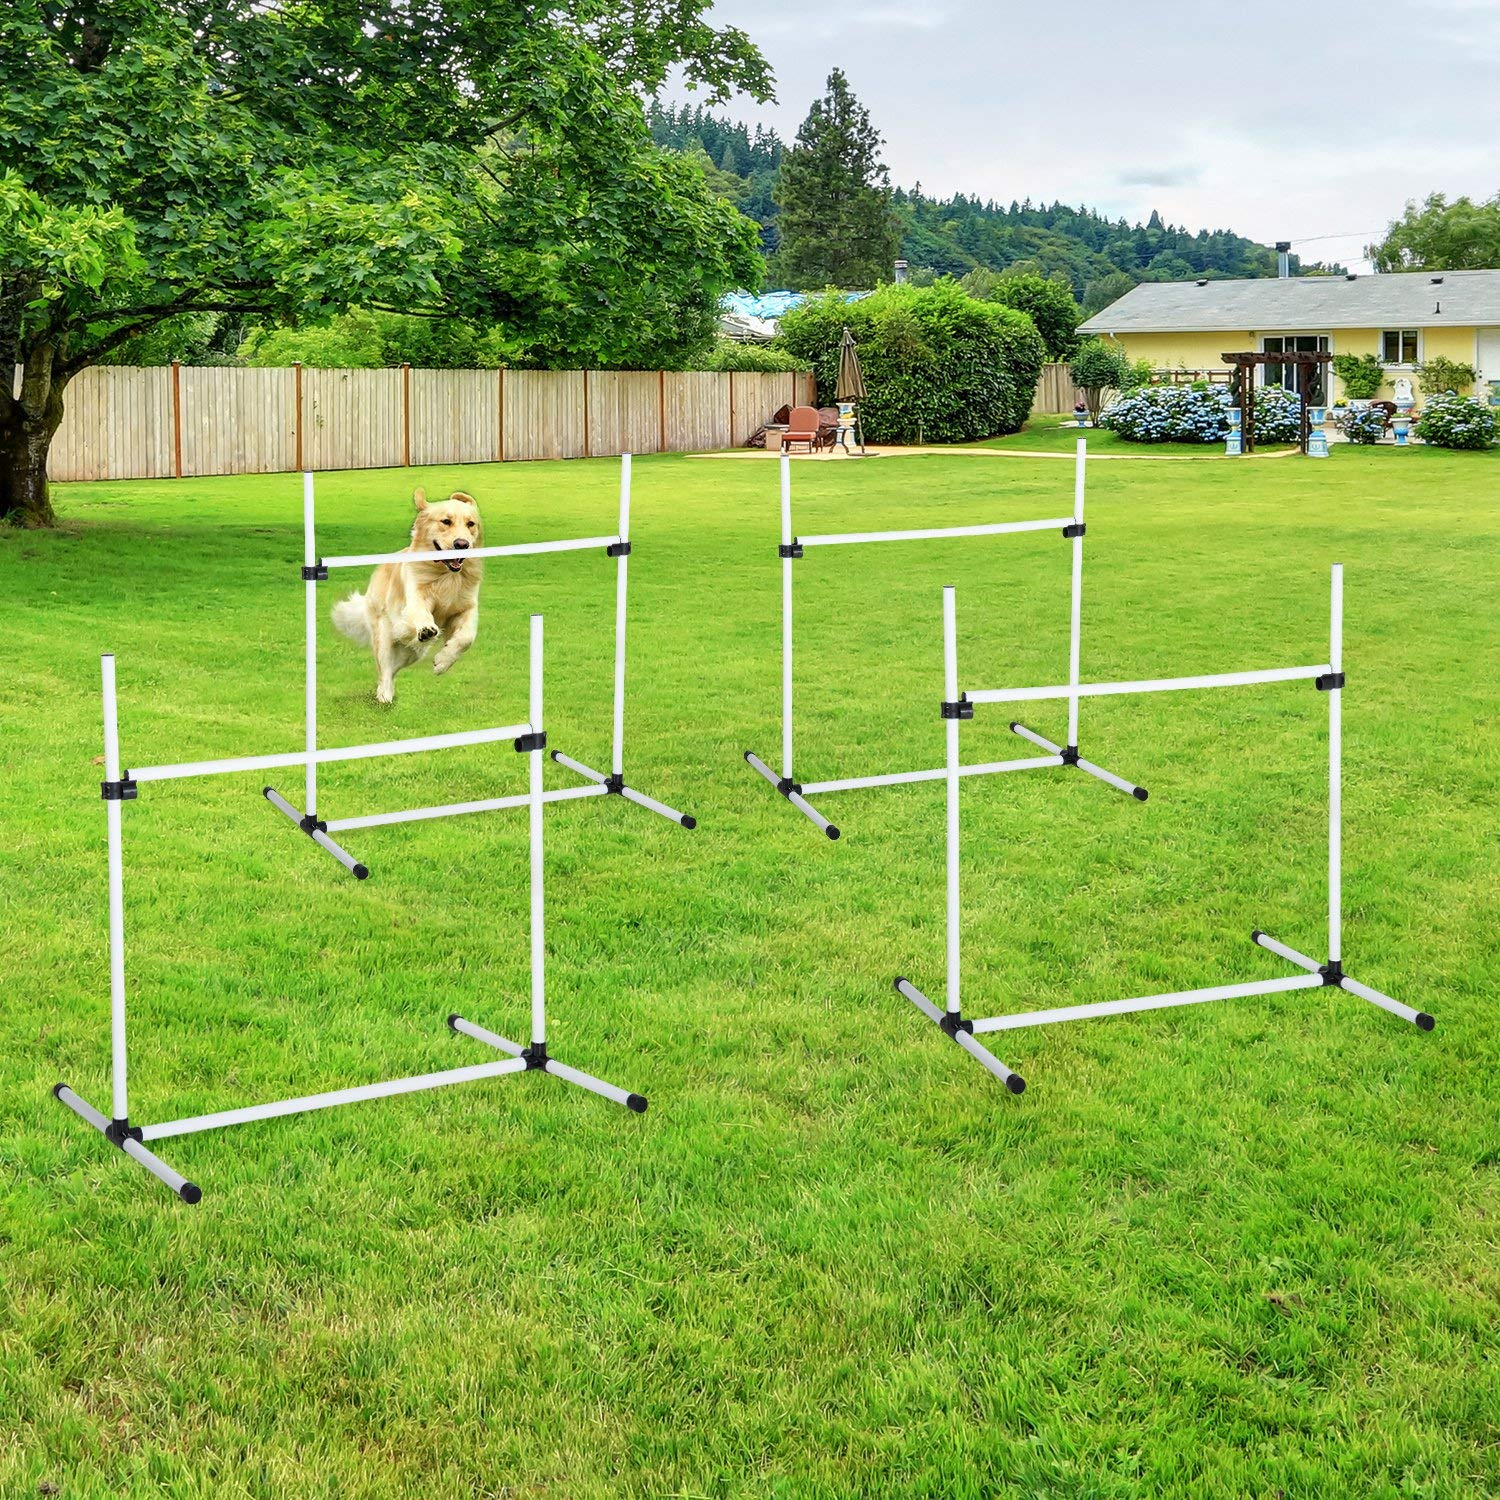 Festnight Adjustable Dog Agility Training Equipment Jump Bar with Carrying Bag, Set of 4 Poles by Festnight